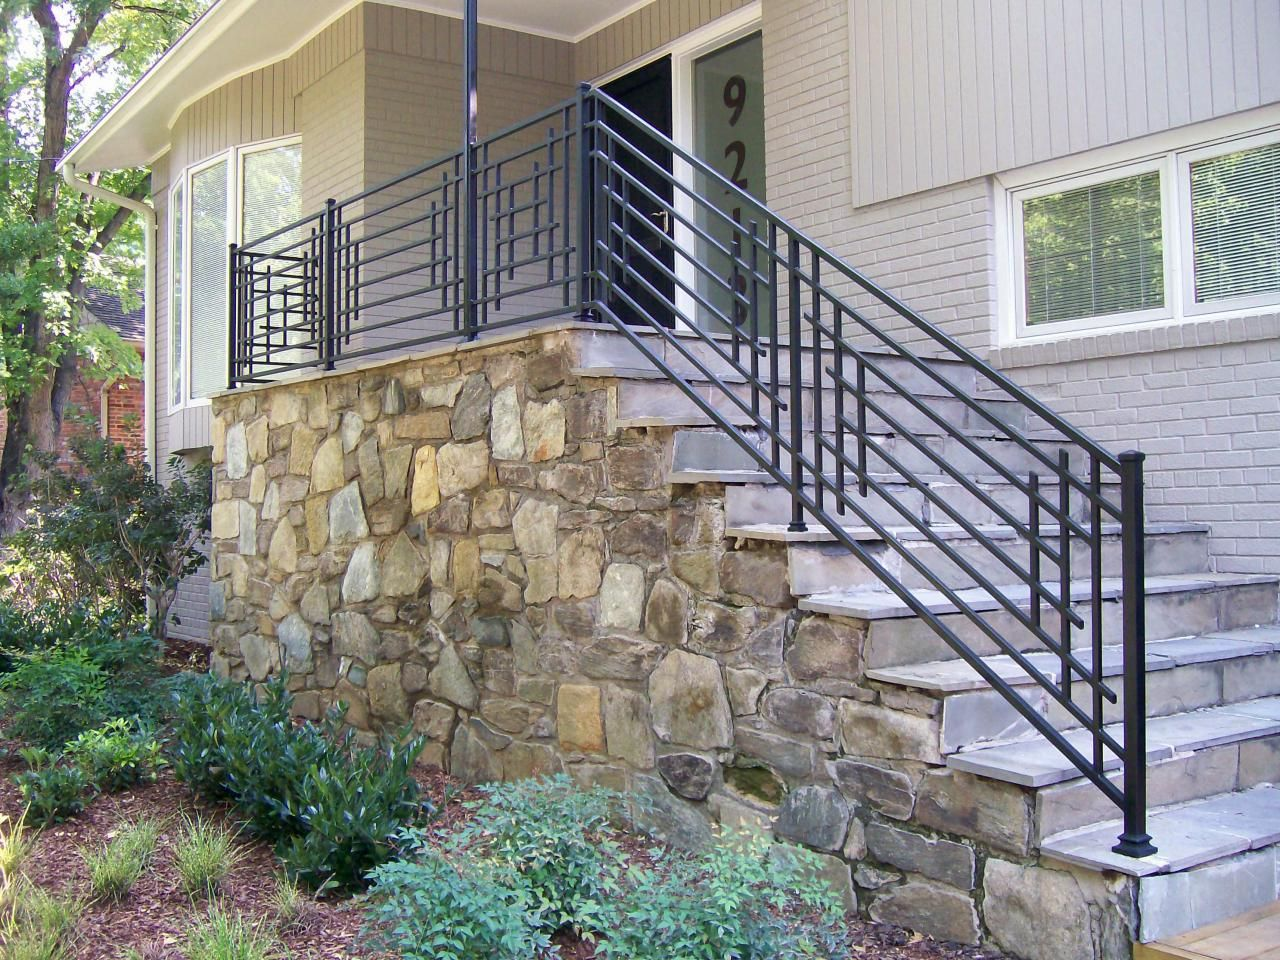 Amazing Wrought Iron Railing For Home Decor Ideas: Faux Stone And Wrought  Iron Railing With Steps Also Outdoor Stair Railings And Brick Exterior  Siding With ...